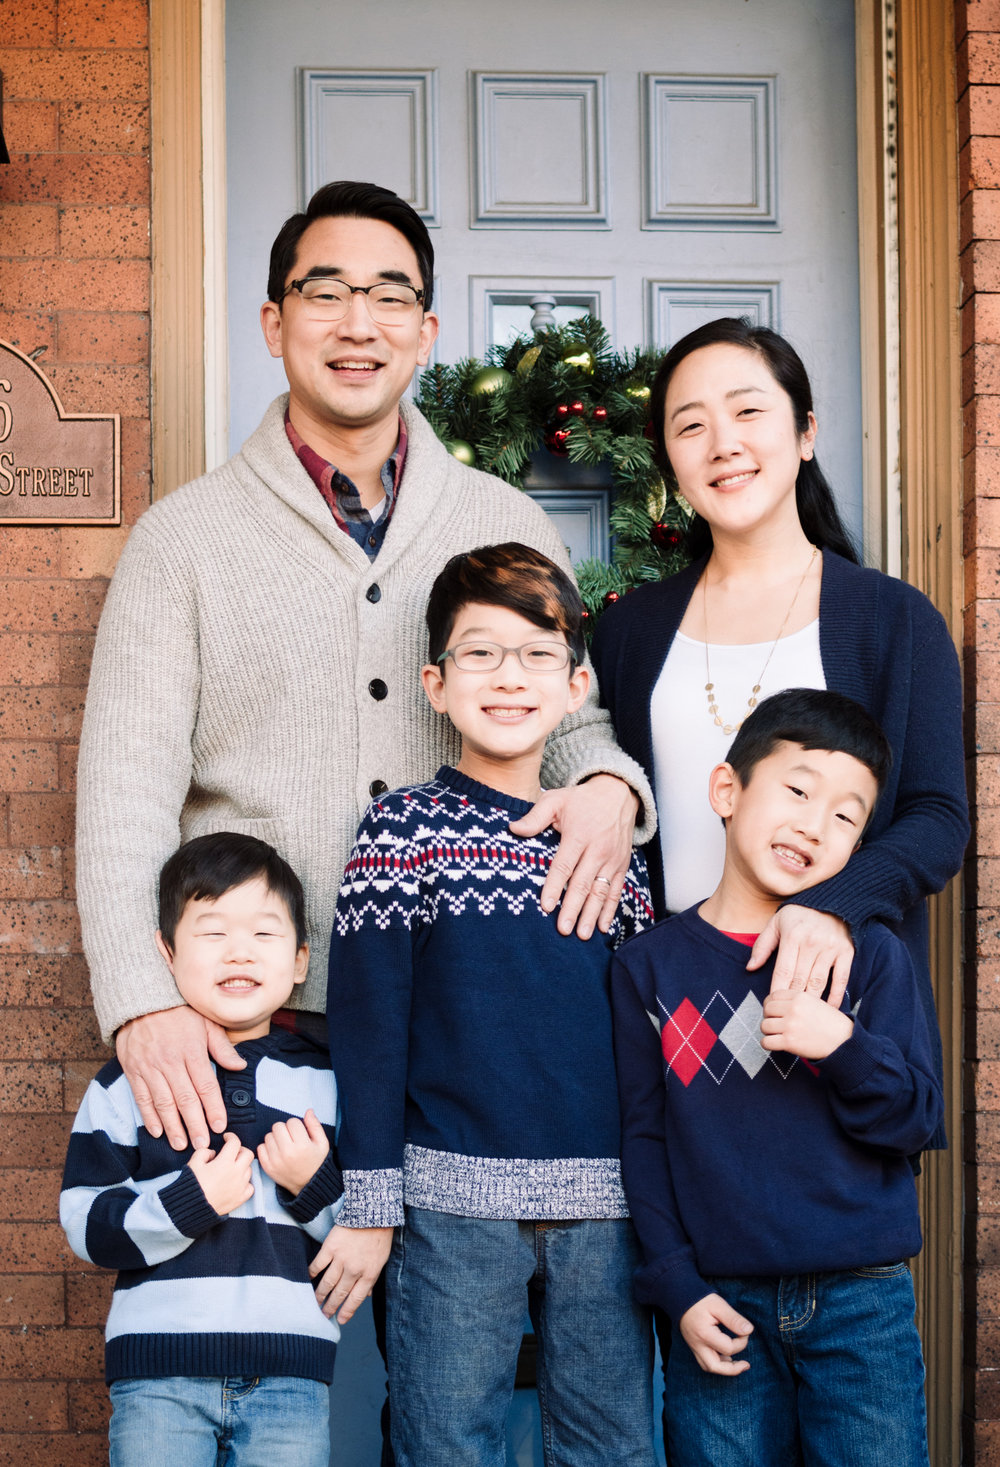 Yoo Family Holiday Portraits